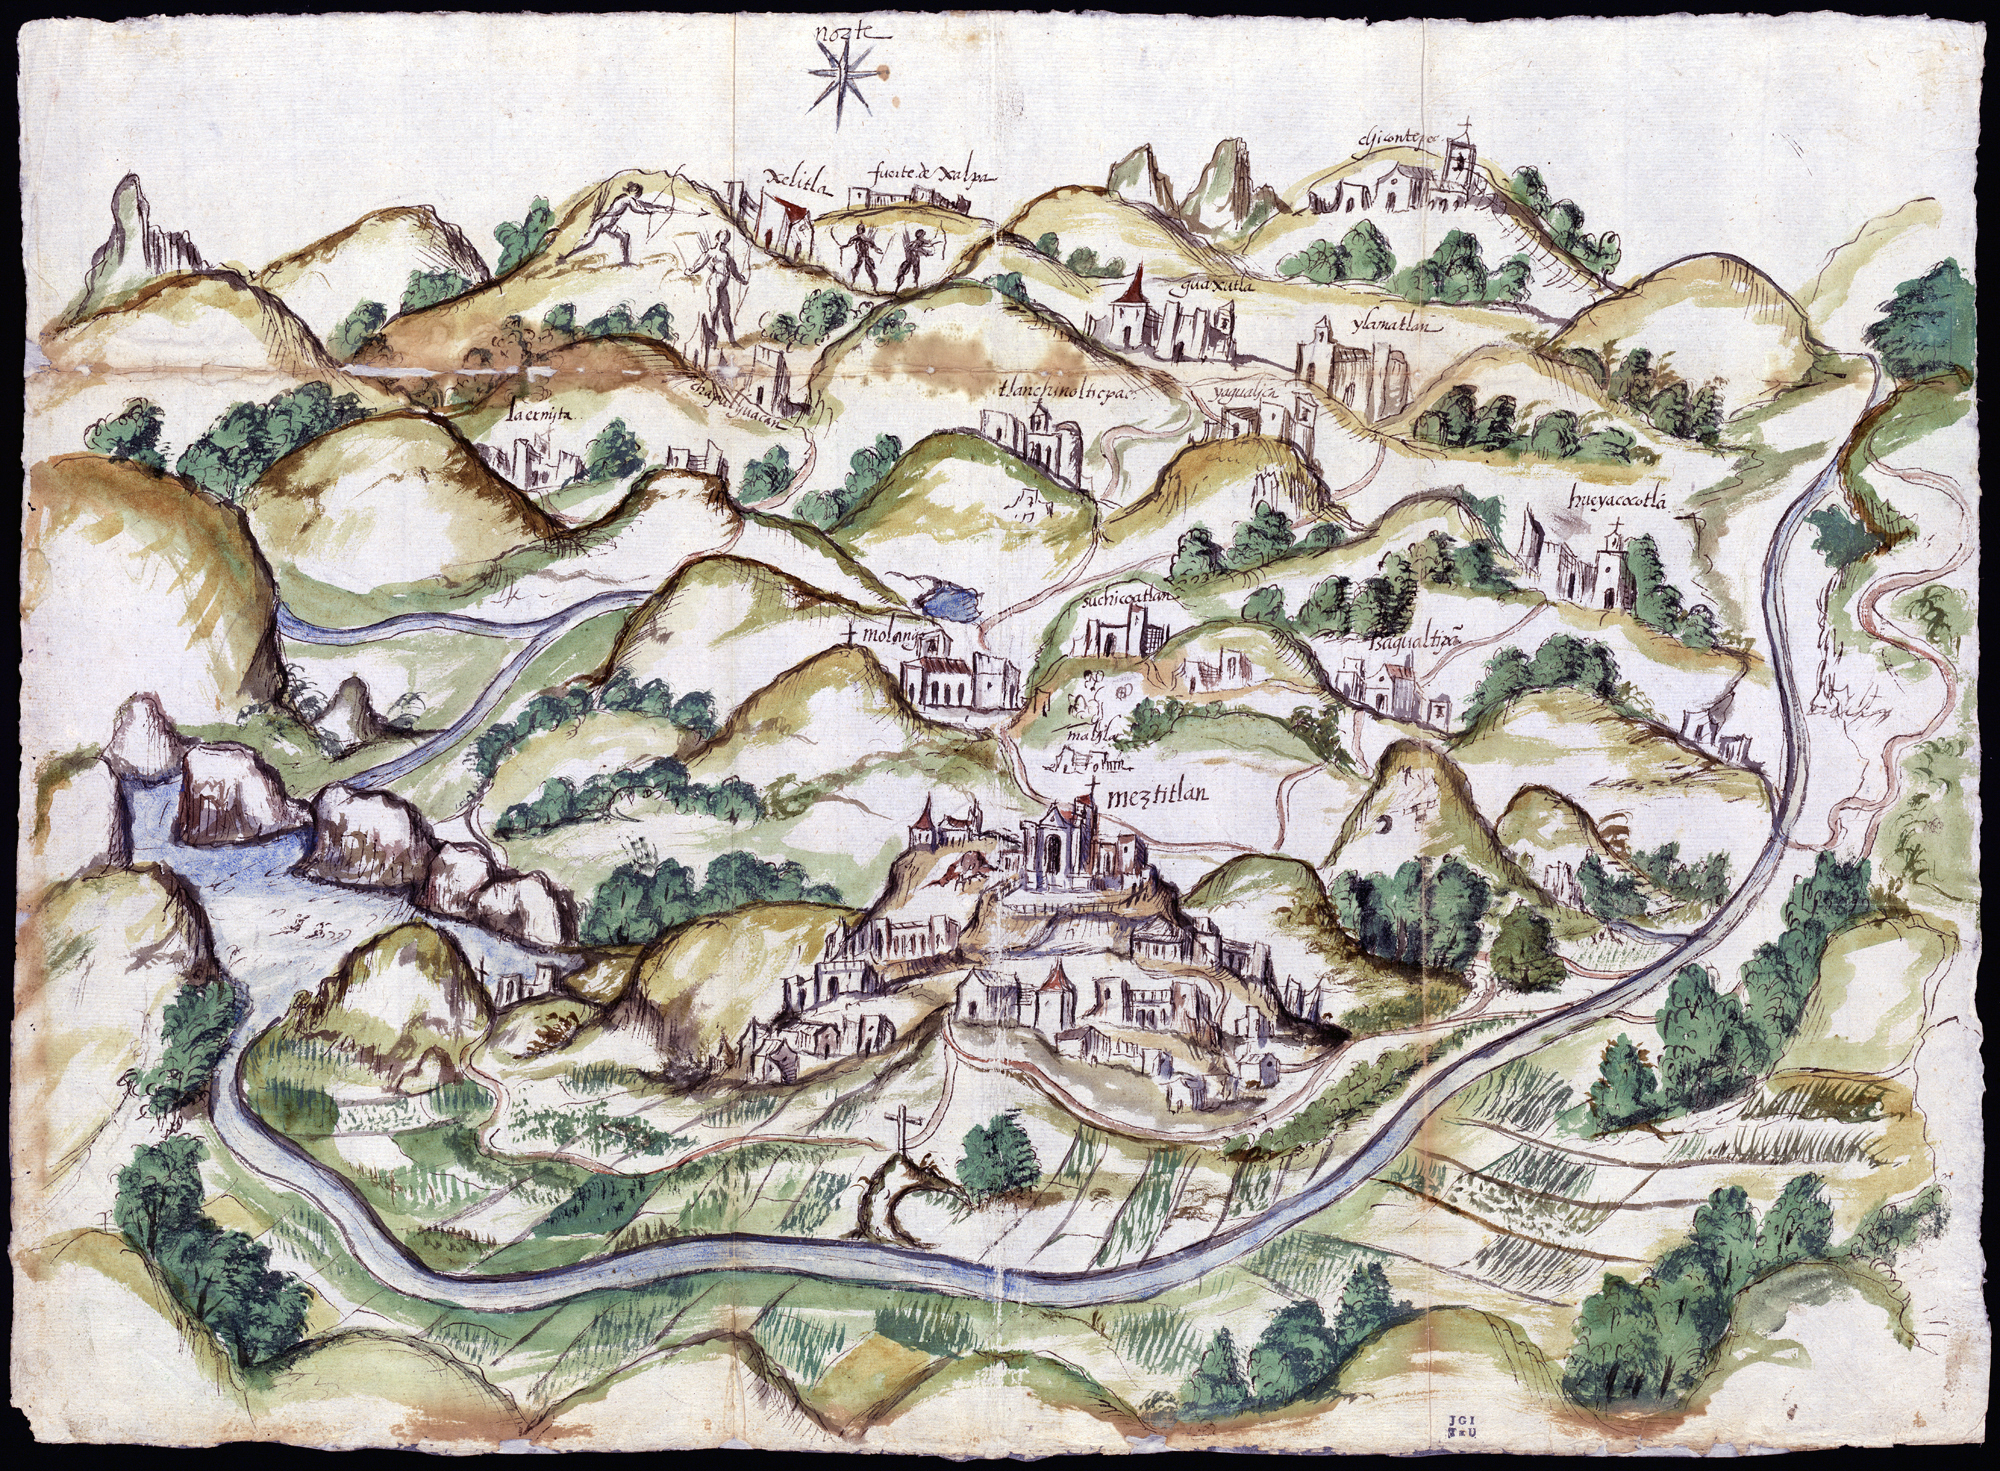 The Mapping Memory exhibition at the Blanton Museum of Art in Austin, Texas, displays maps made in the late 1500s of what is now Mexico. They were created by indigenous peoples to help Spanish invaders map occupied lands. This watercolor and ink map of Meztitlán was made in 1579 by Gabriel de Chavez. Photo: Blanton Museum of Art